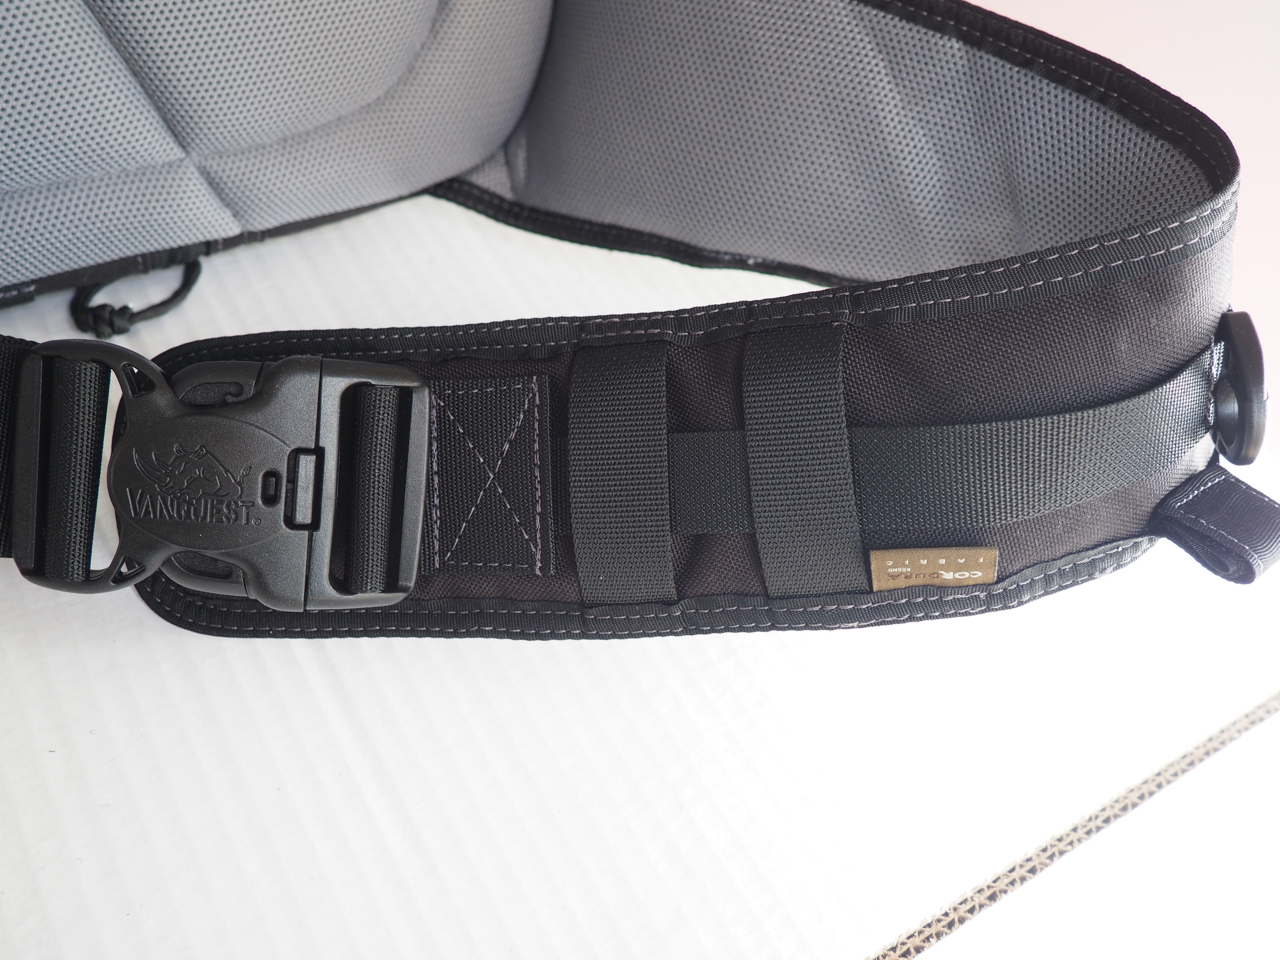 Loops on the strap